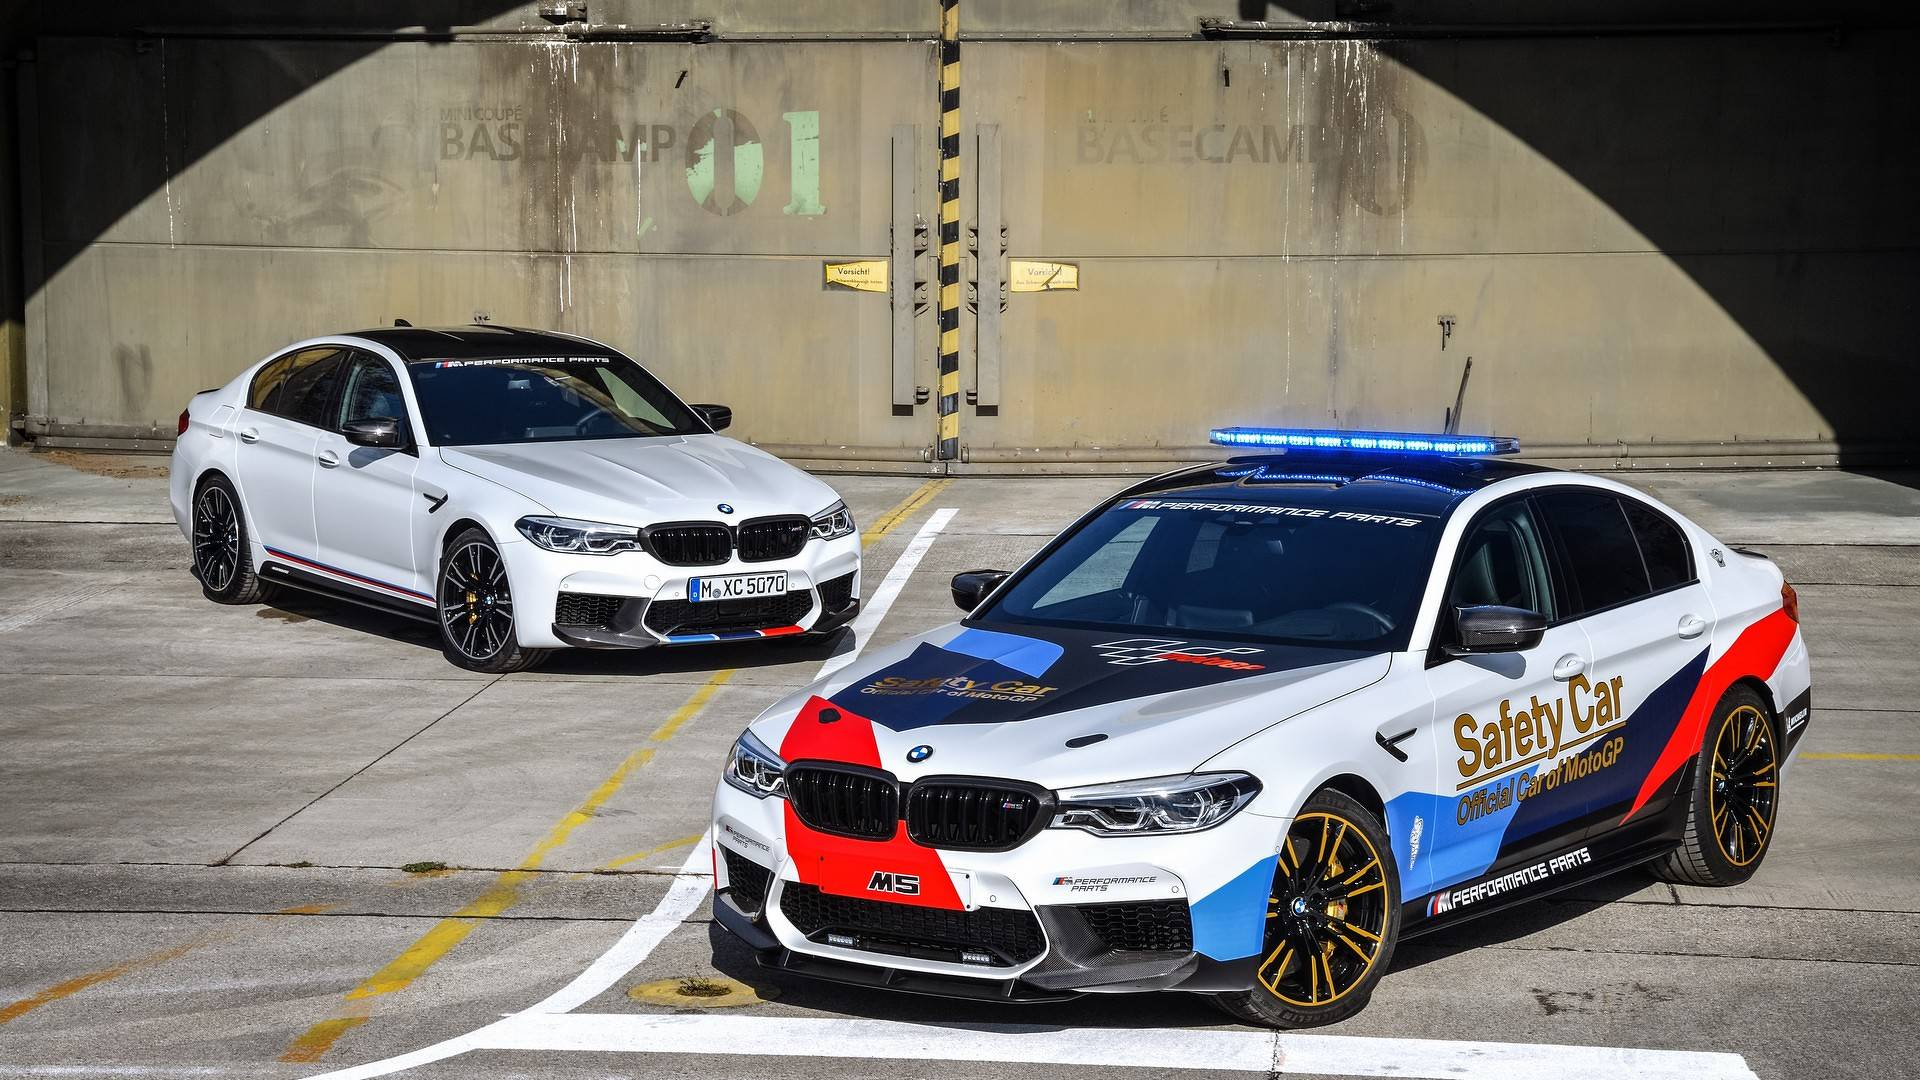 bmw-m5-motogp-safety-car (14)